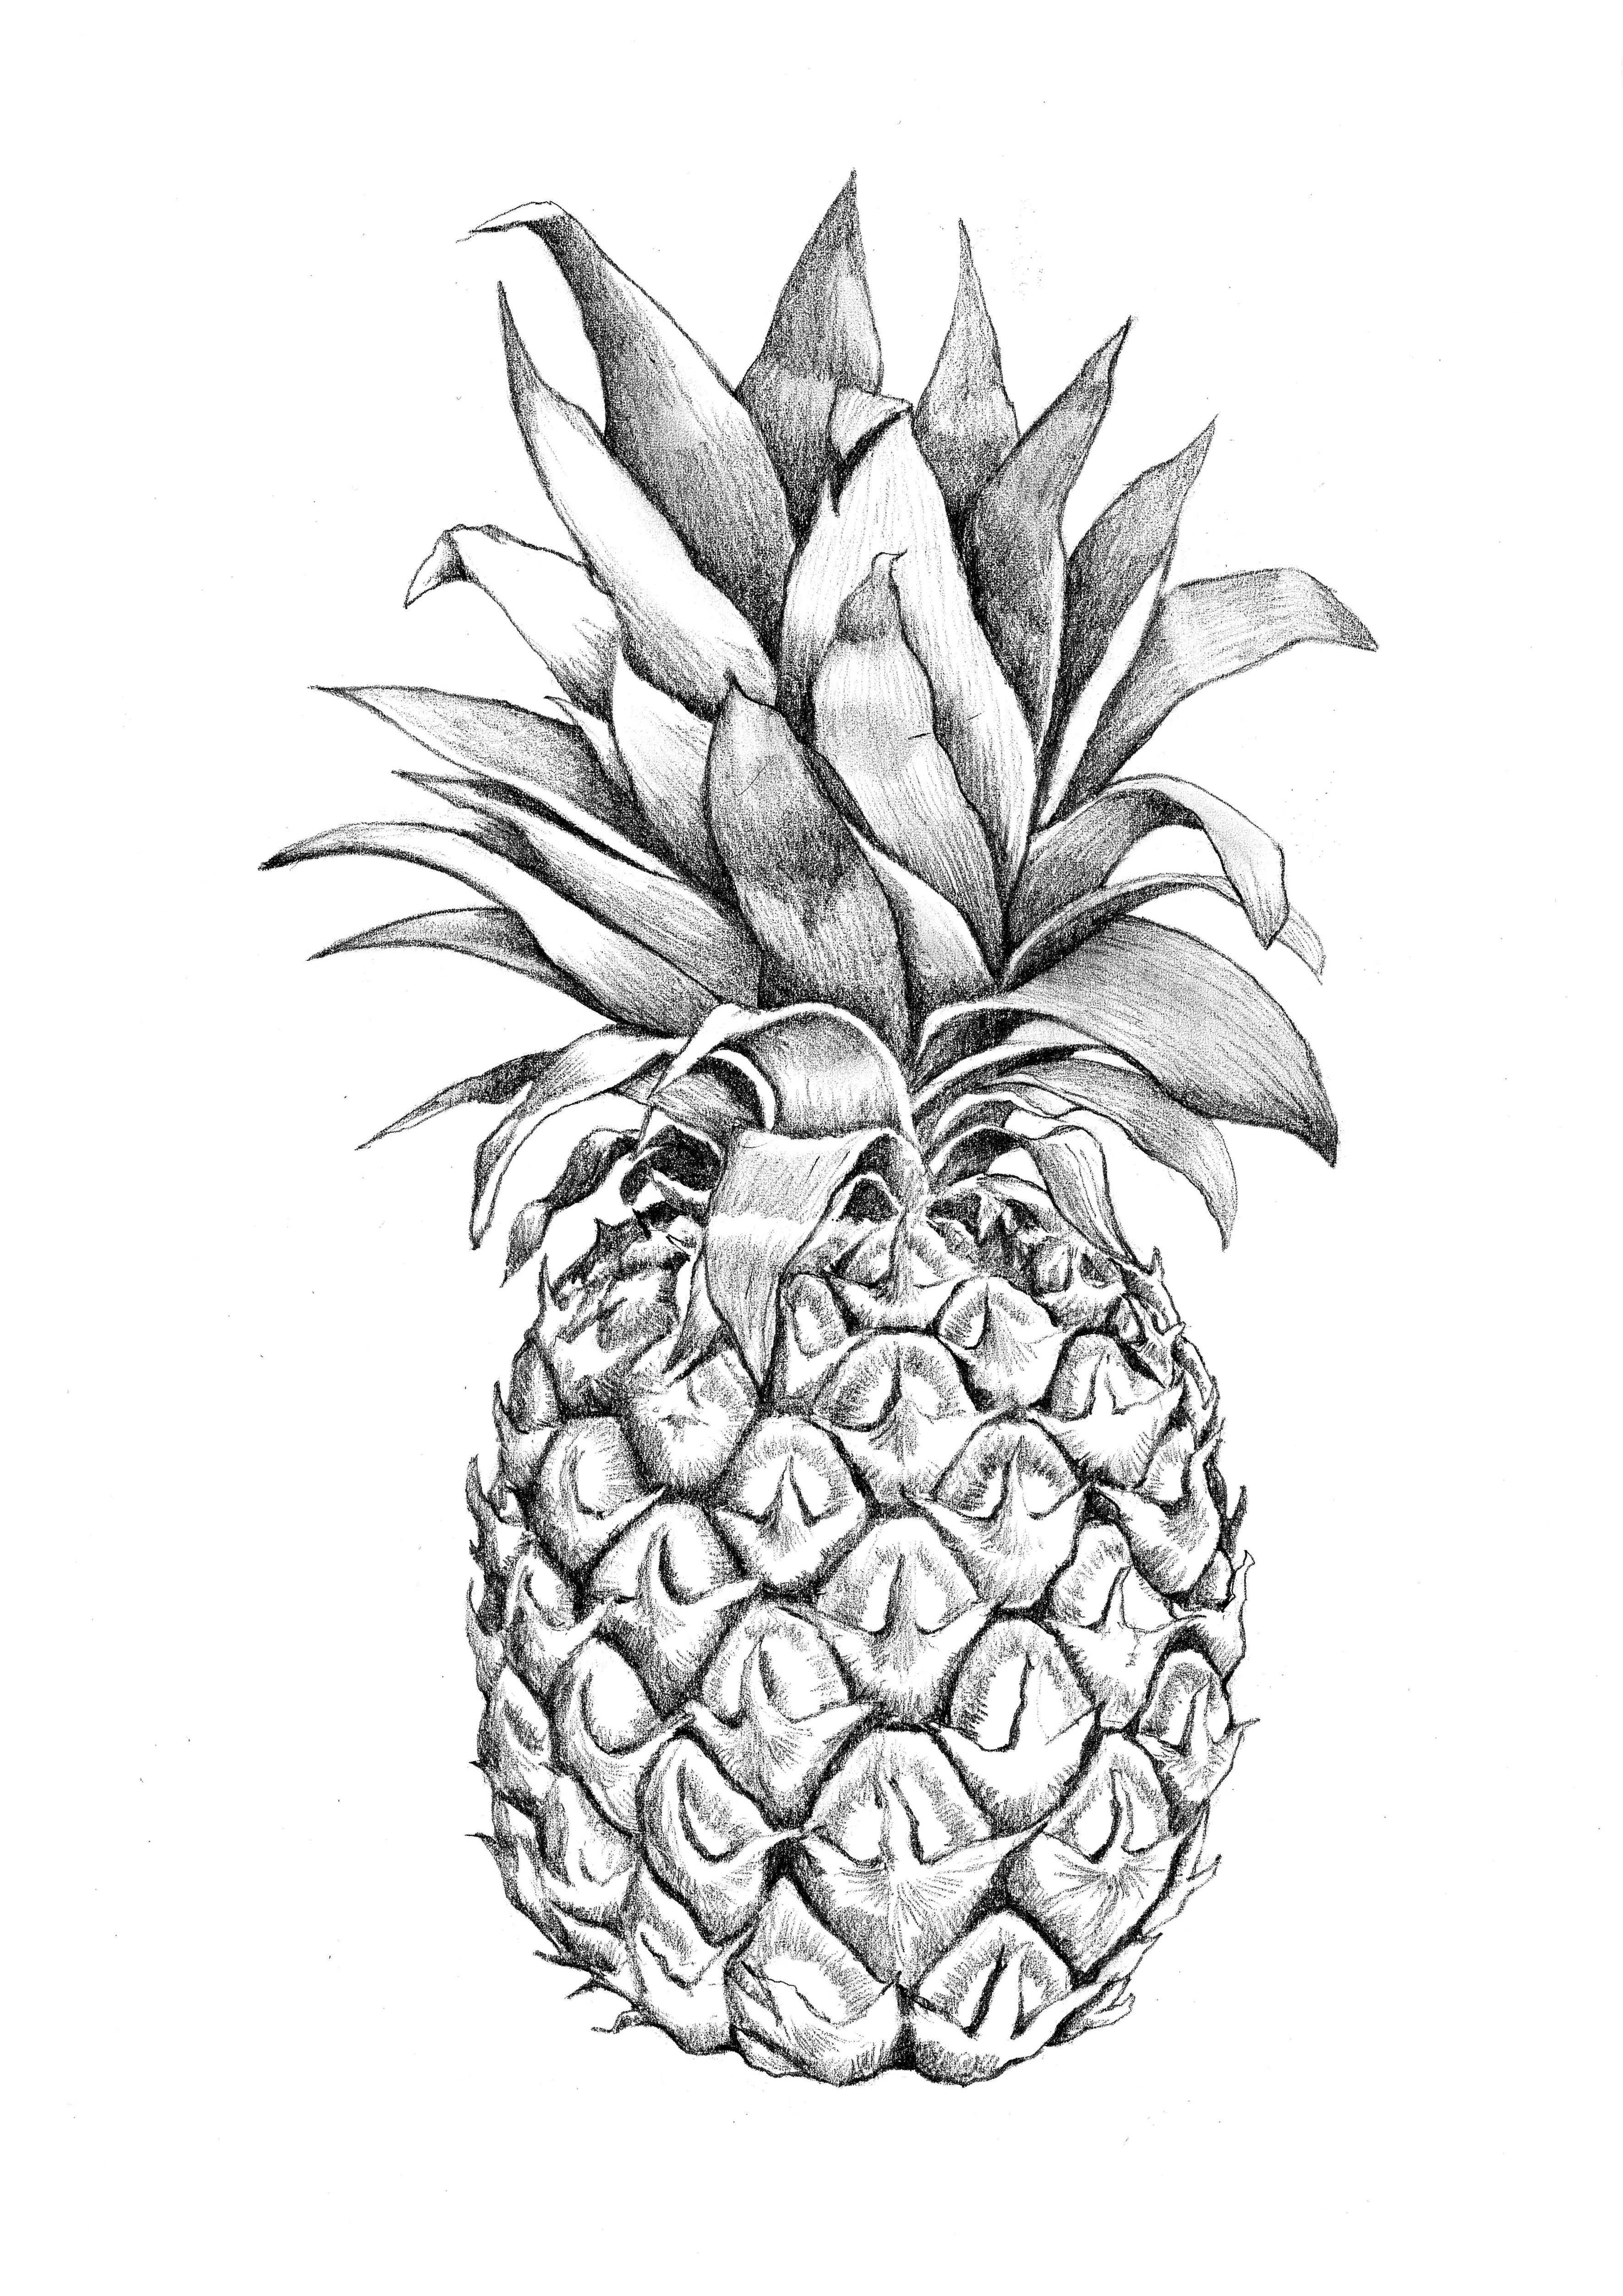 banner black and white Images for pineapple graphic. Pineapples drawing